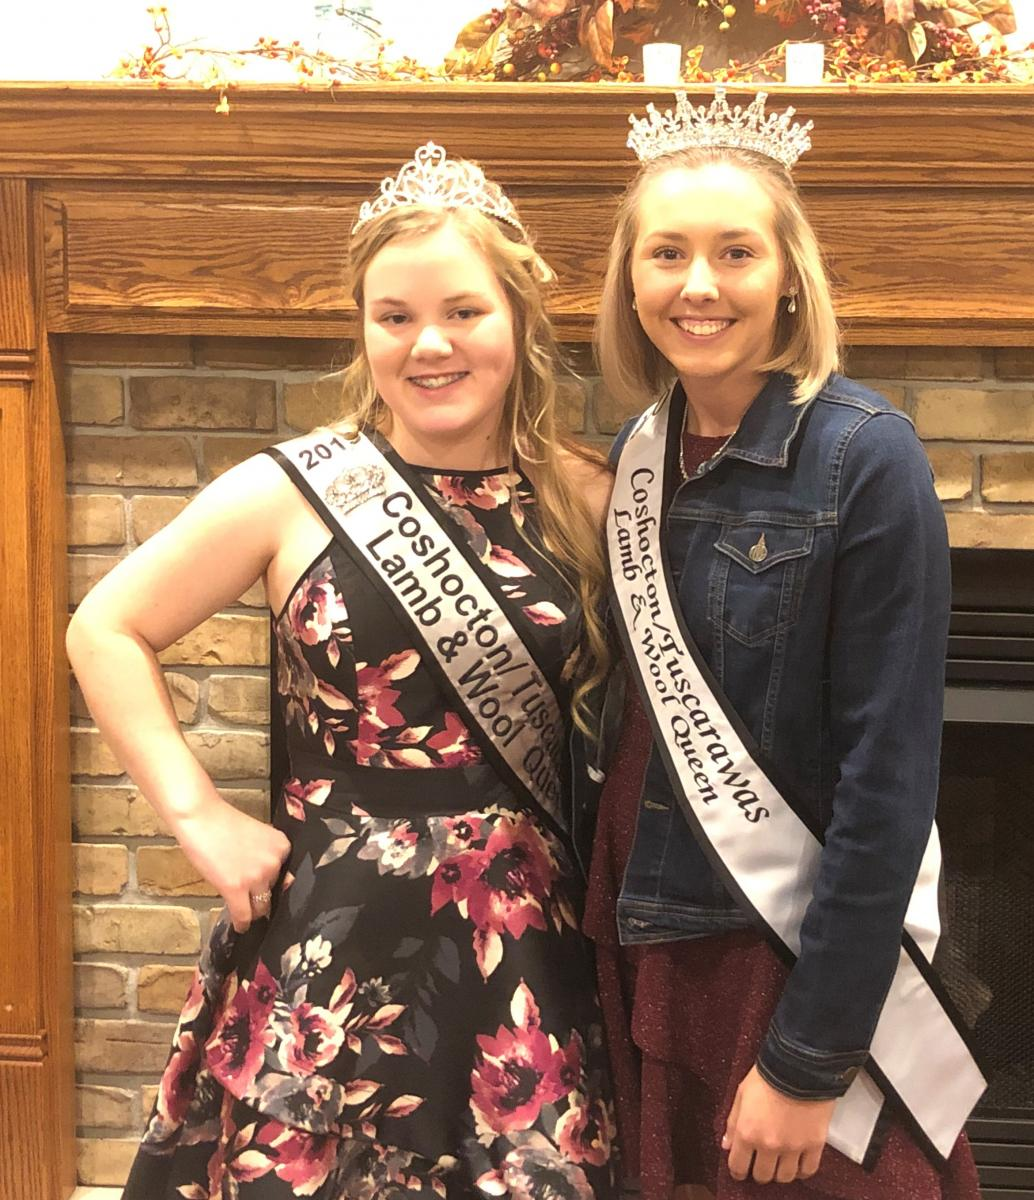 Adeline Kendle, 2019 Queen, with Madison DeVault, newly crowned 2020 Lamb & Wool Queen.